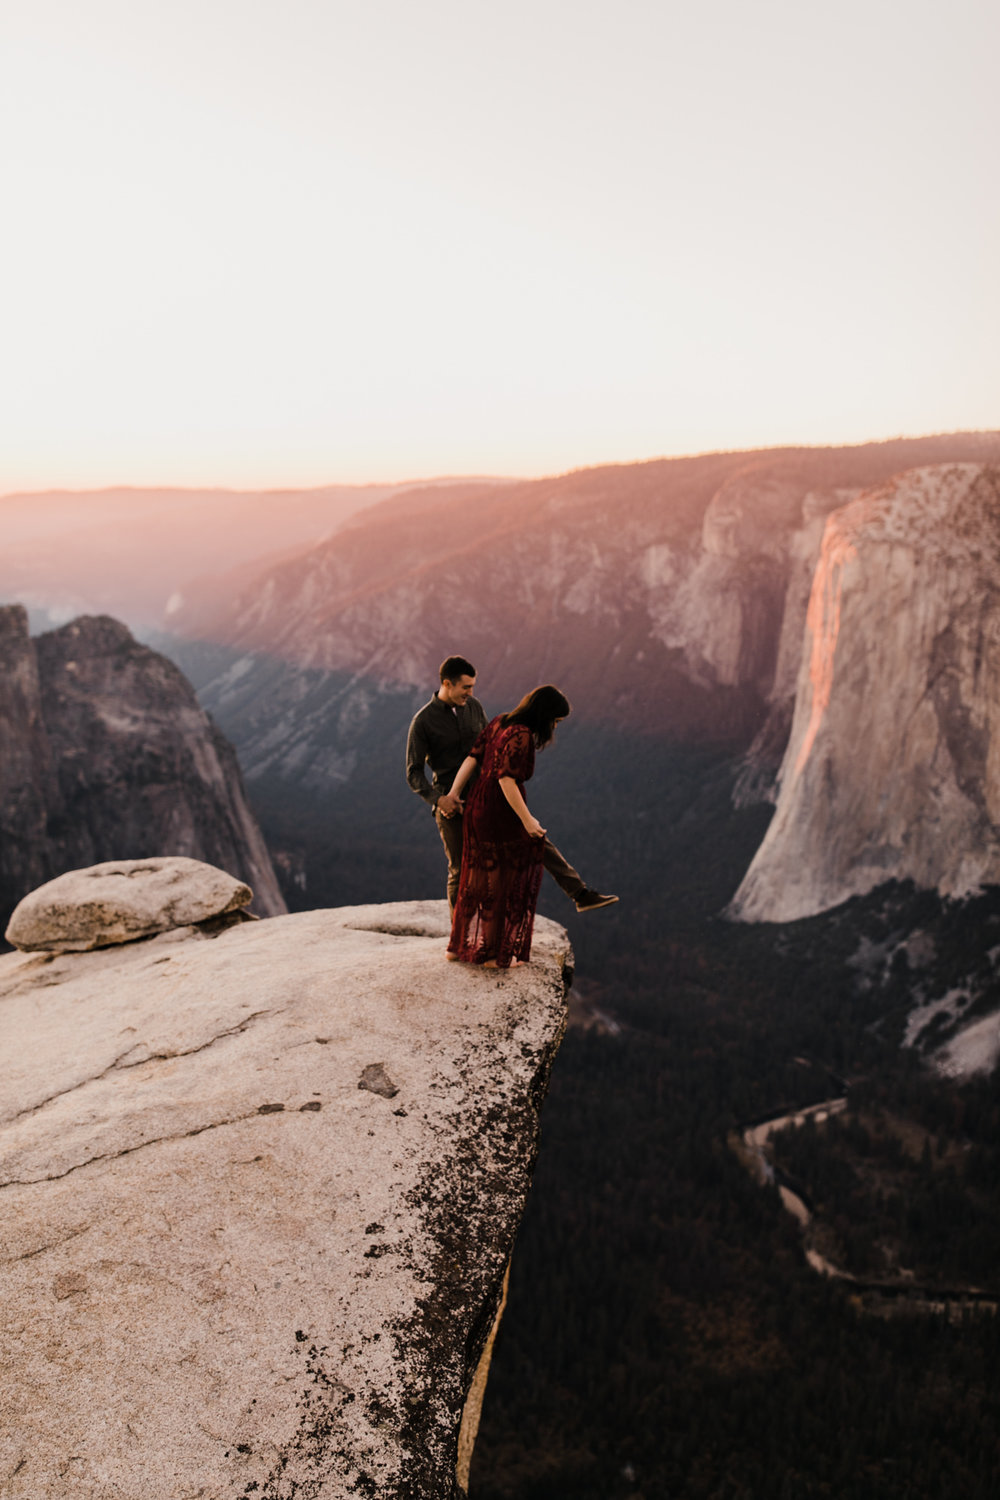 epic yosemite national park engagement session | destination engagement photo inspiration | utah adventure elopement photographers | the hearnes adventure photography | www.thehearnes.com